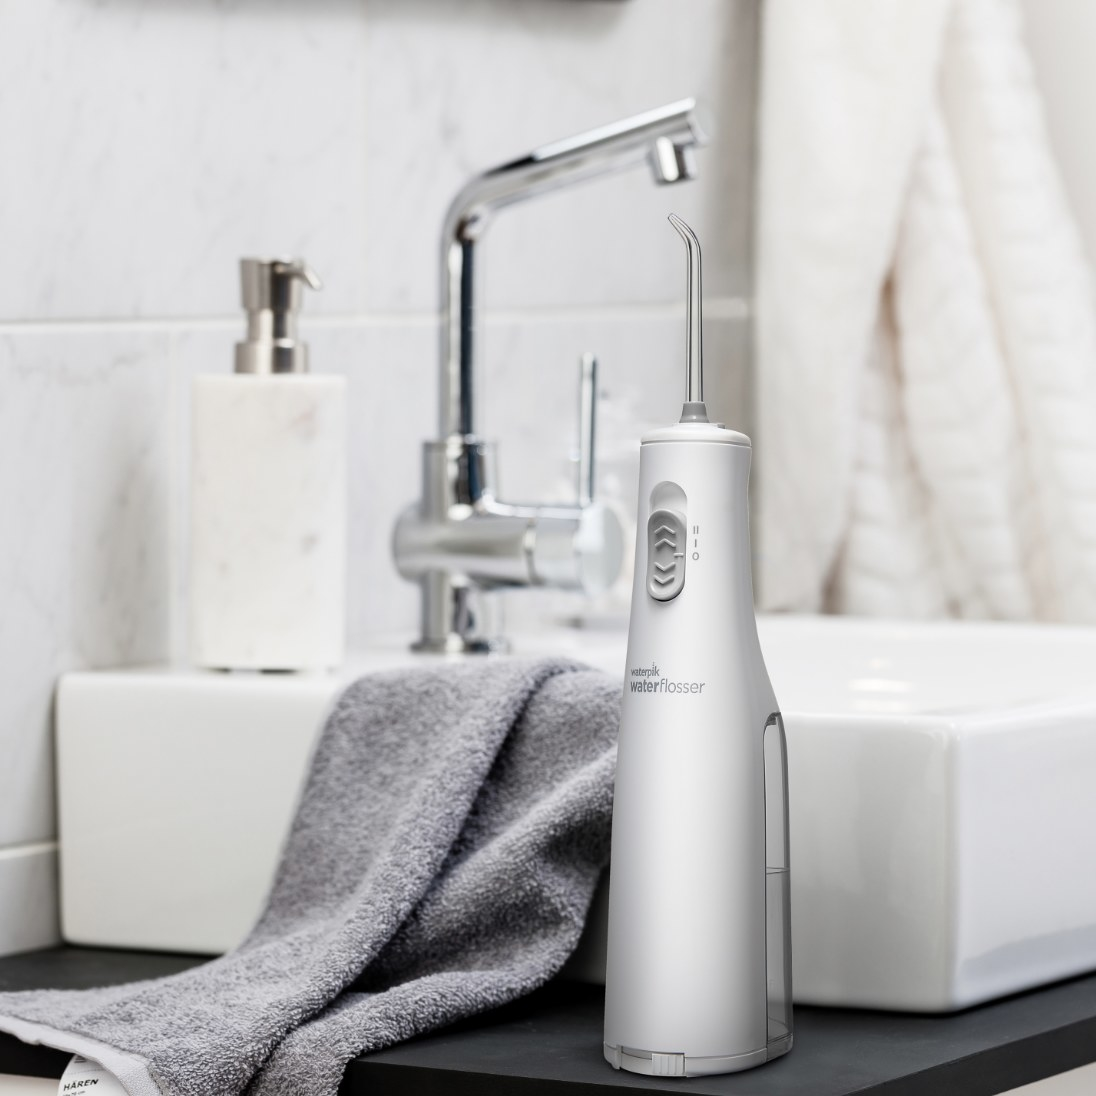 The white flosser is next to a white sink with silver touches